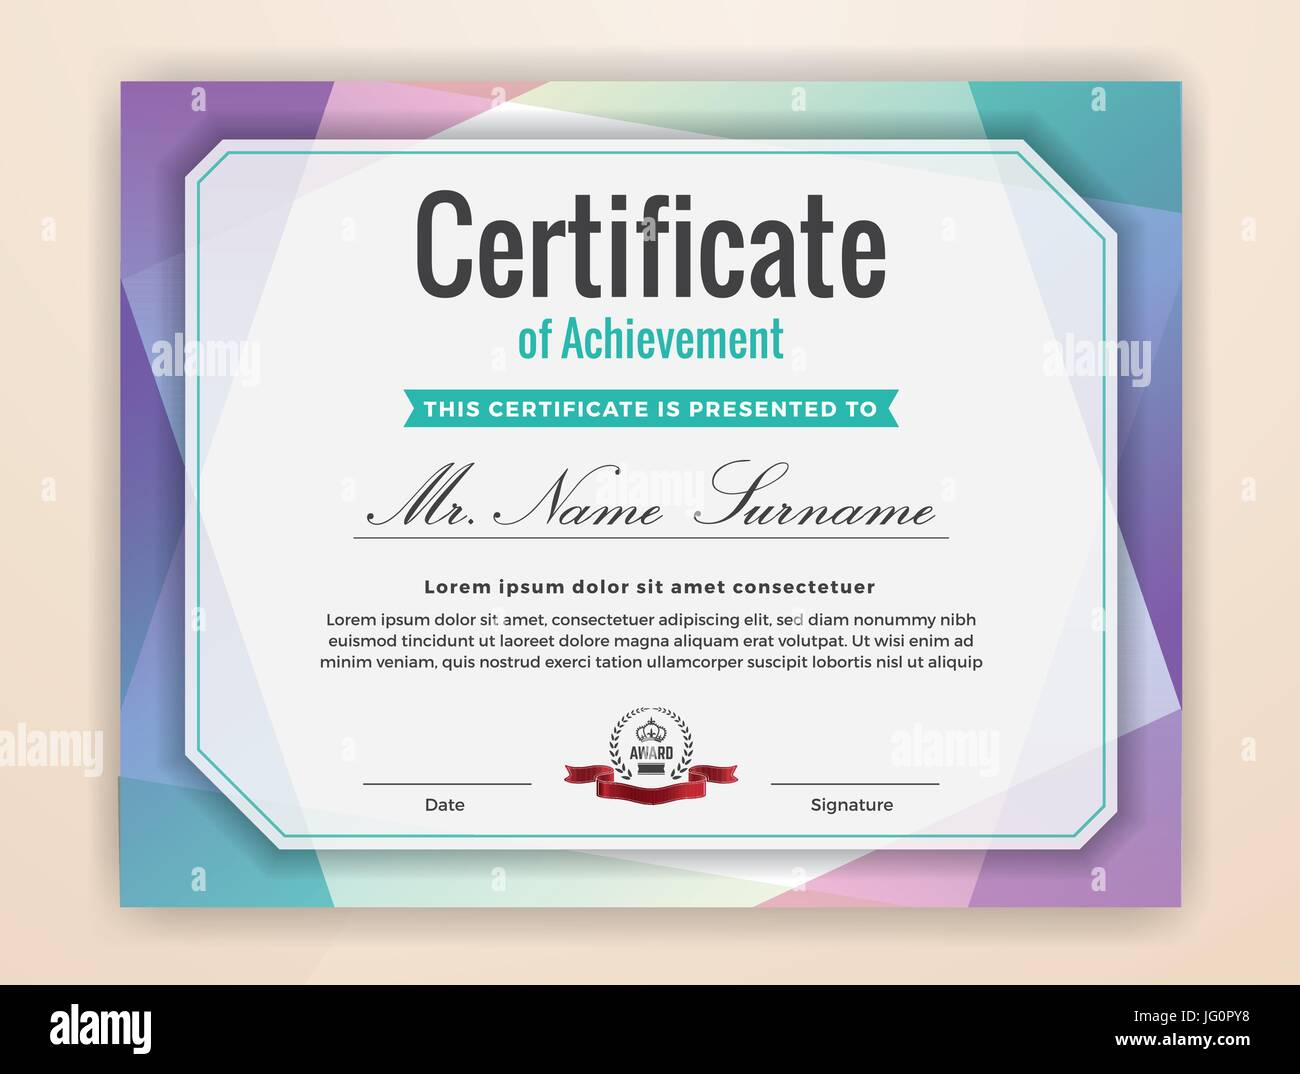 Multipurpose Modern Professional Certificate Template Design for ...